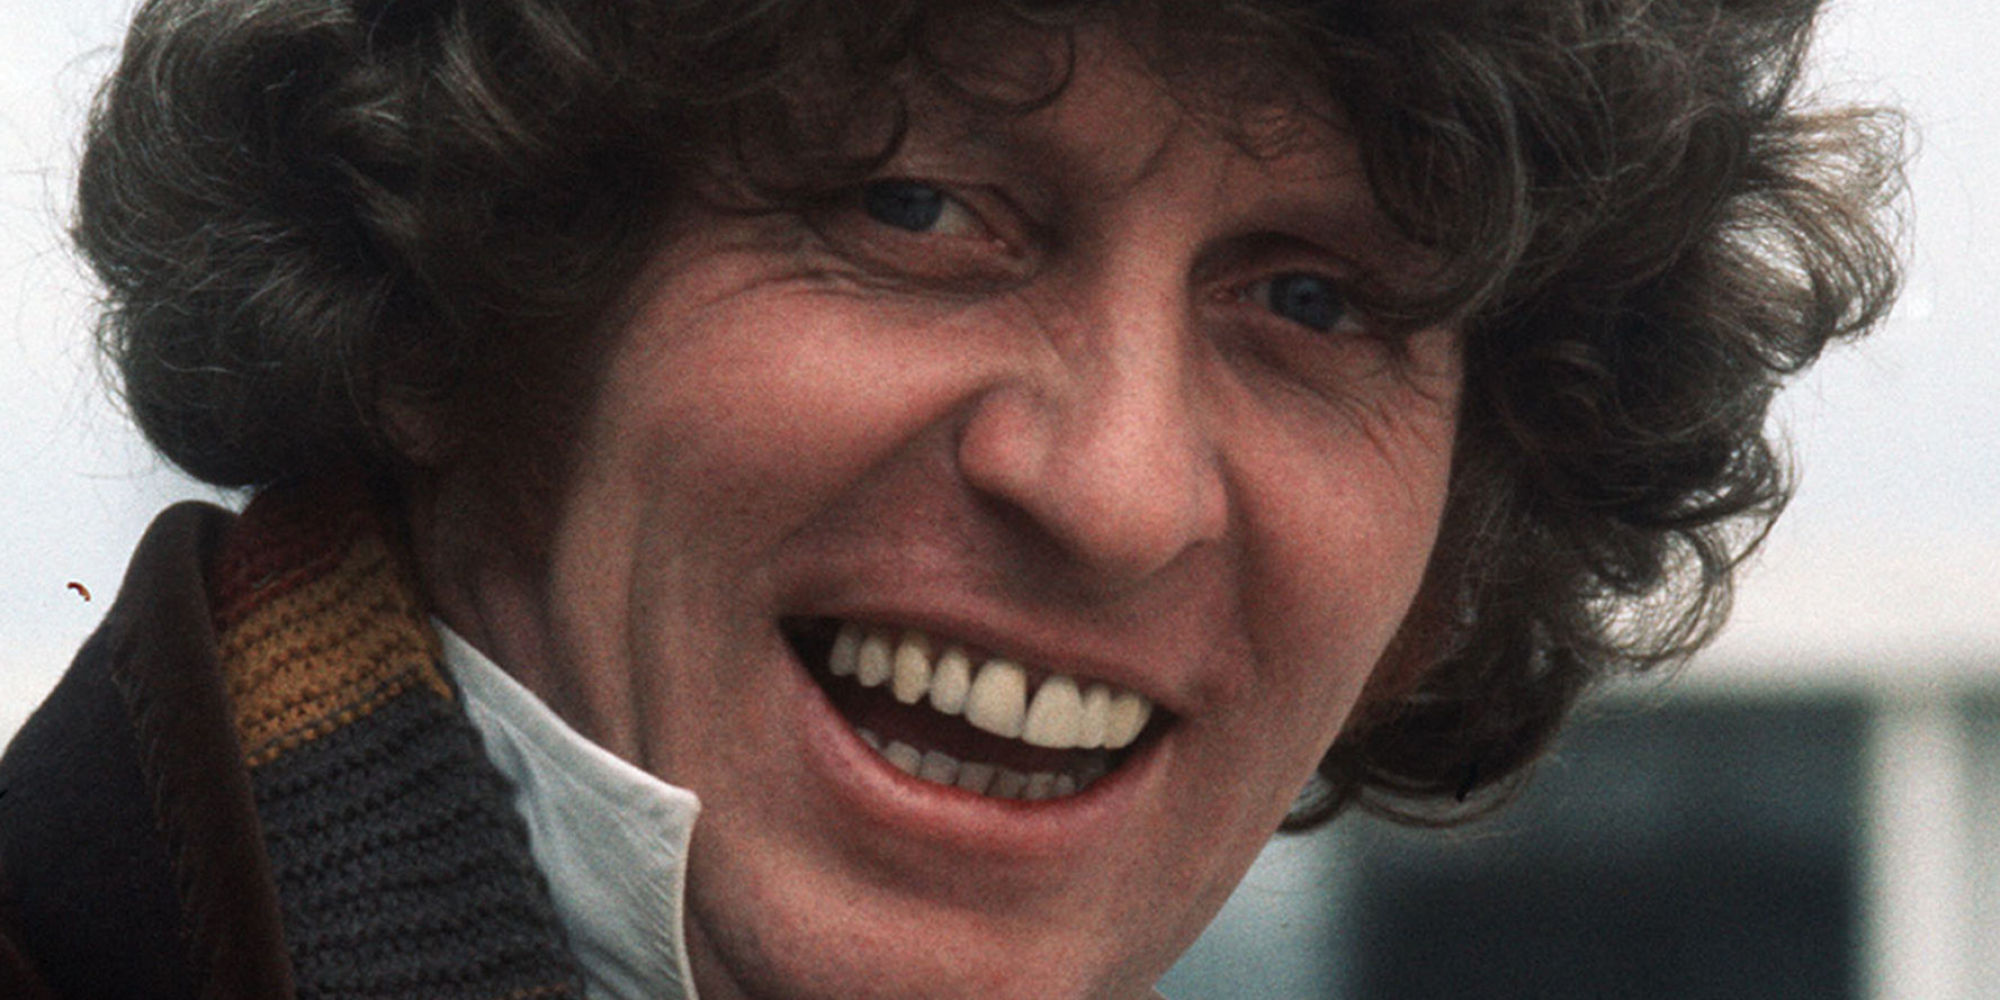 tom baker catstom baker одежда, tom baker чехлы, tom baker cats, tom baker watches, tom baker fourth doctor, tom baker dr who, tom baker star wars, tom baker smile, tom baker scarf, tom baker cancer center, tom baker artist, tom baker wiki, tom baker tailor, tom baker singer, tom baker official, tom baker linkedin, tom baker quotes, tom baker creepy smile gif, tom baker bags, tom baker clothing